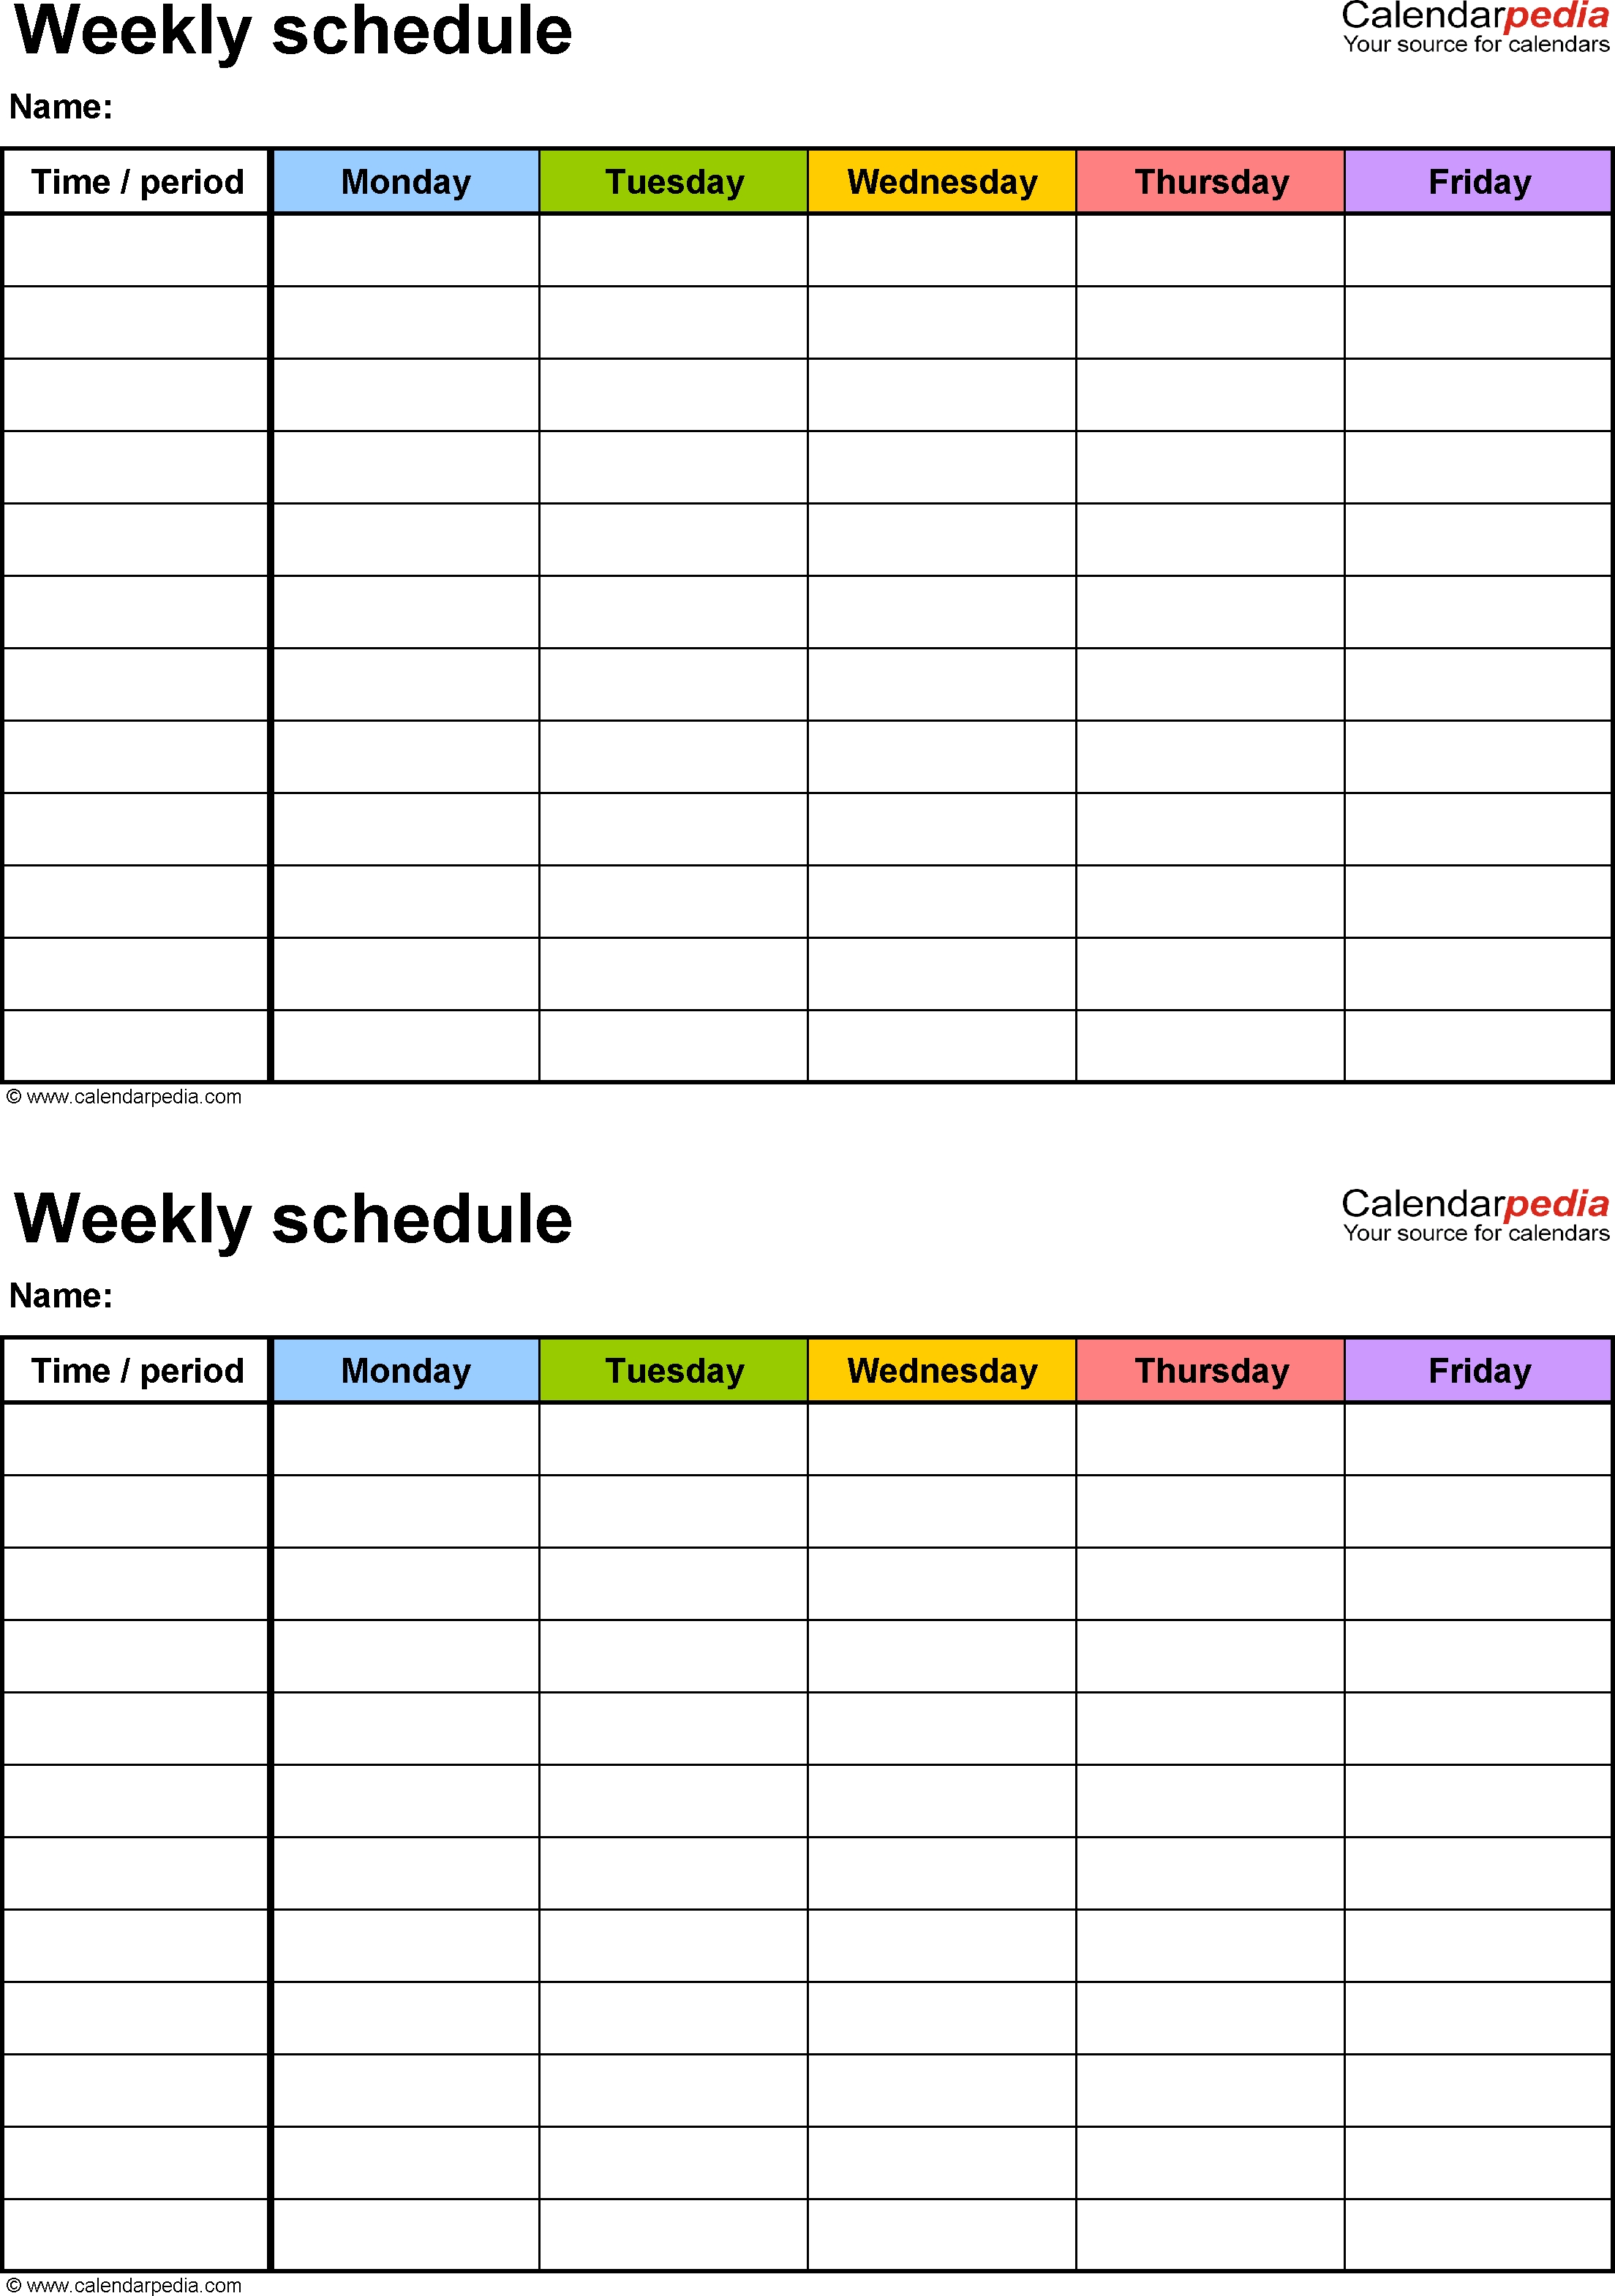 Free Weekly Schedule Templates For Excel - 18 Templates-12 Hour Shift Calendar Templates